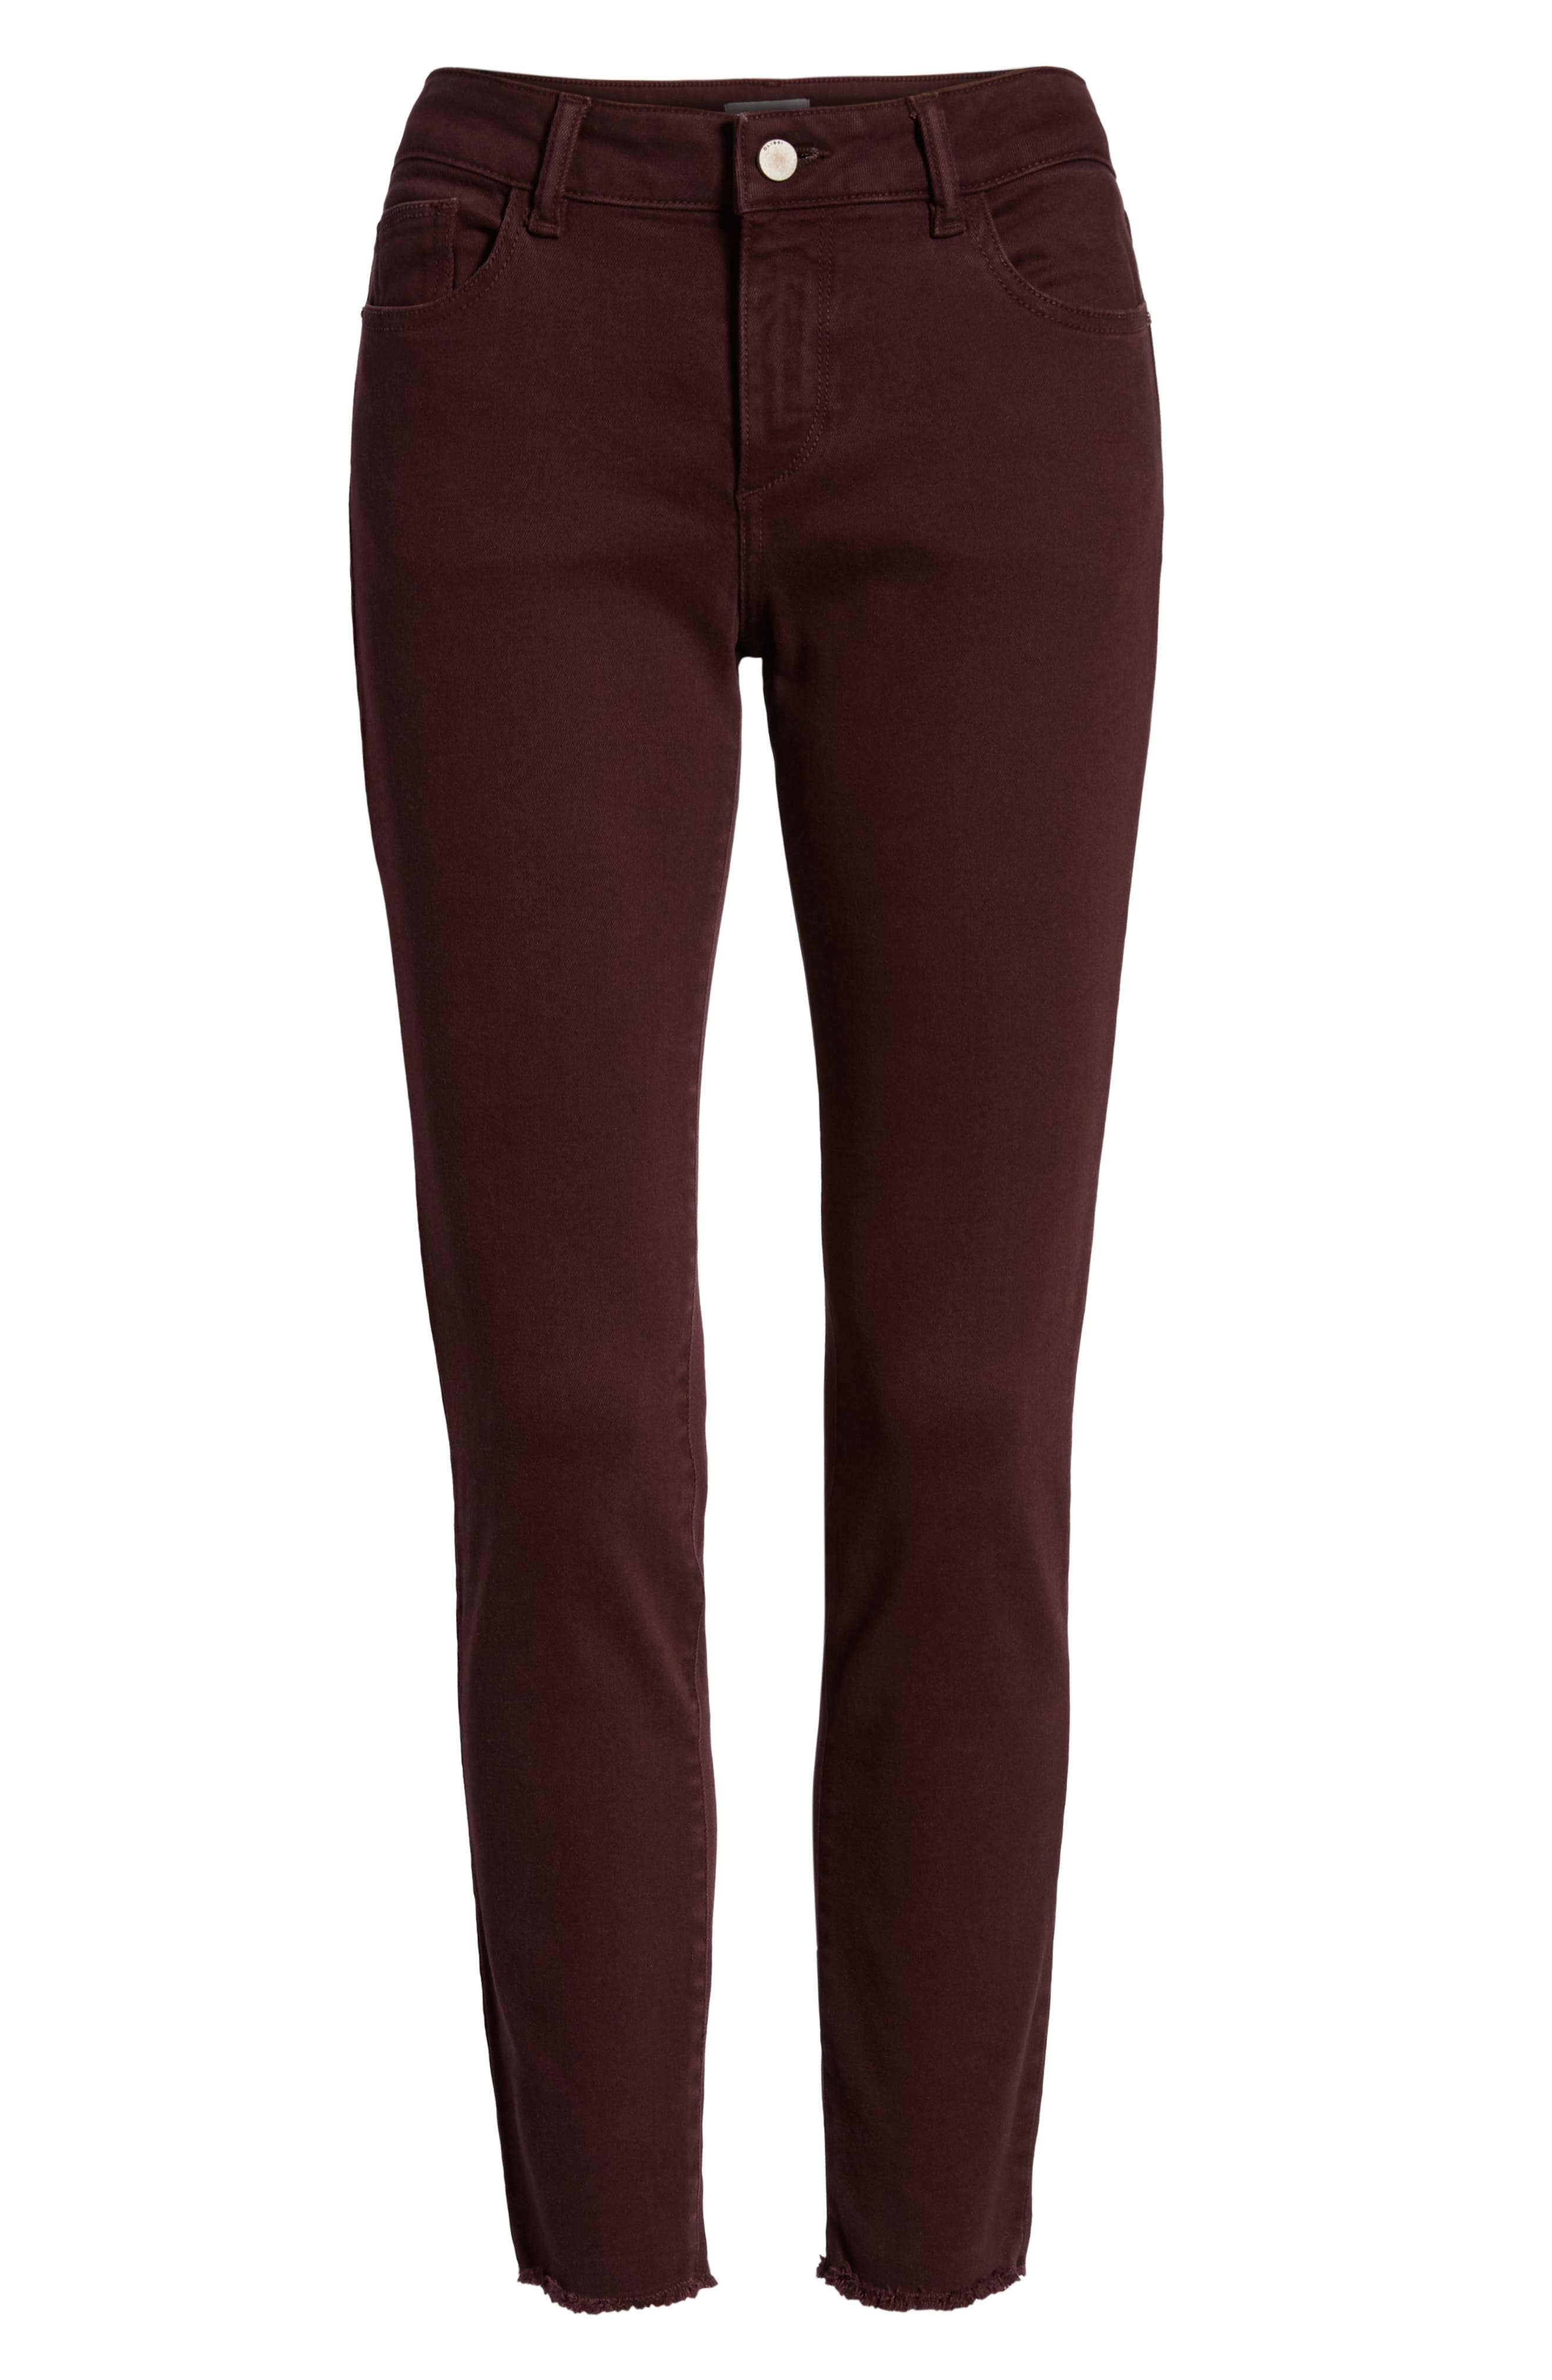 Margaux Instasculpt Ankle Skinny Jeans,                             Alternate thumbnail 7, color,                             DEEP BURGUNDY